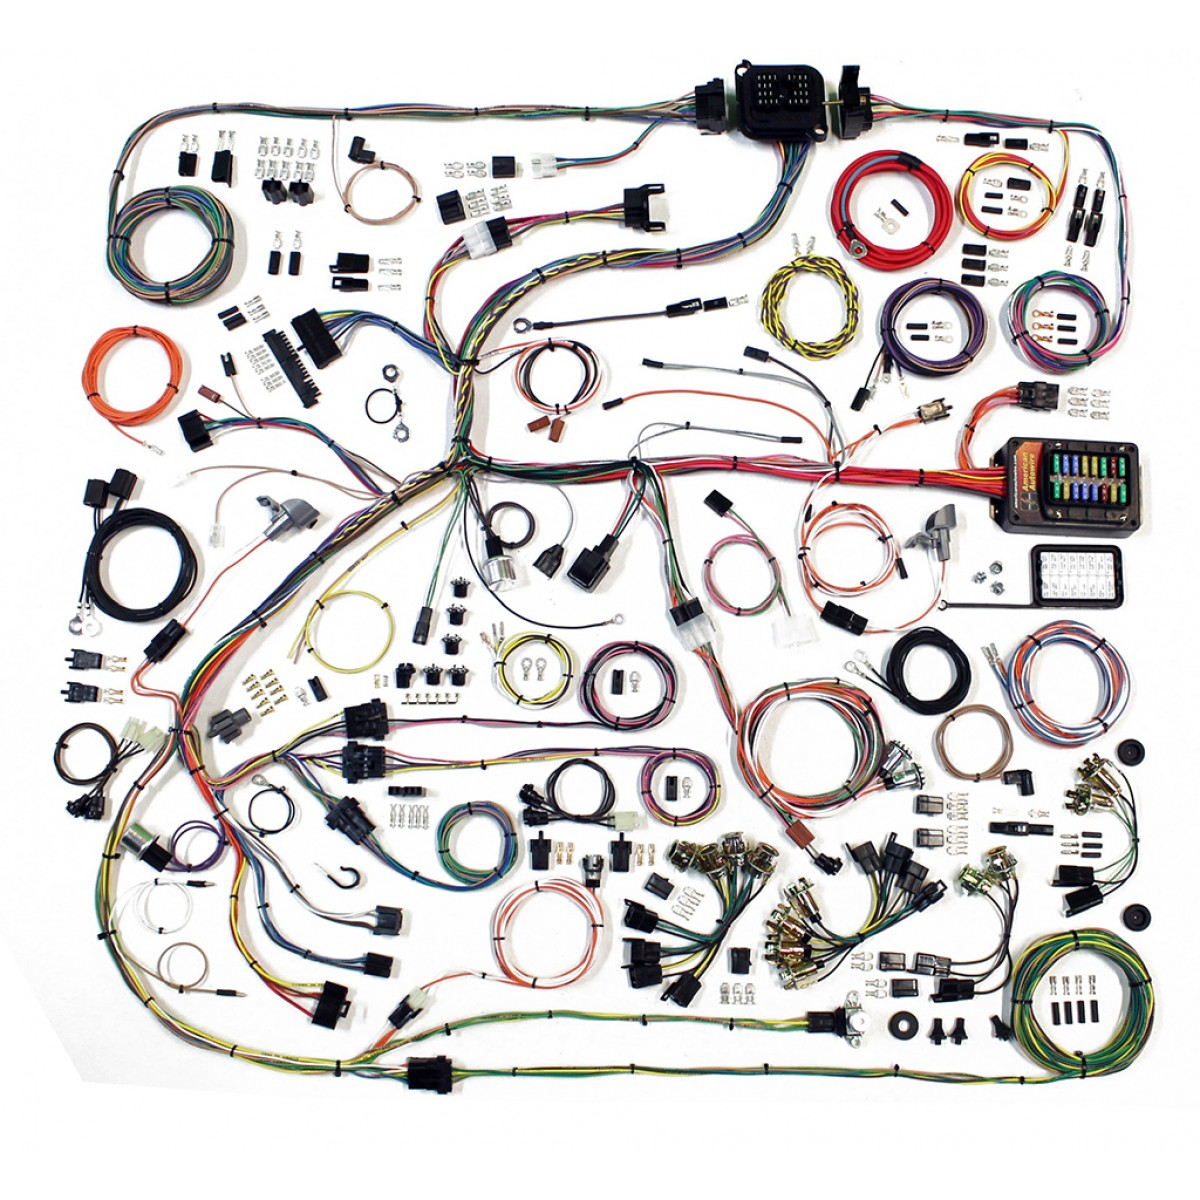 Complete Wiring Harness Kit - 1968-70 Dodge Charger on radio harness, oxygen sensor extension harness, suspension harness, pony harness, amp bypass harness, battery harness, electrical harness, maxi-seal harness, obd0 to obd1 conversion harness, cable harness, dog harness, safety harness, alpine stereo harness, engine harness, fall protection harness, nakamichi harness, pet harness,